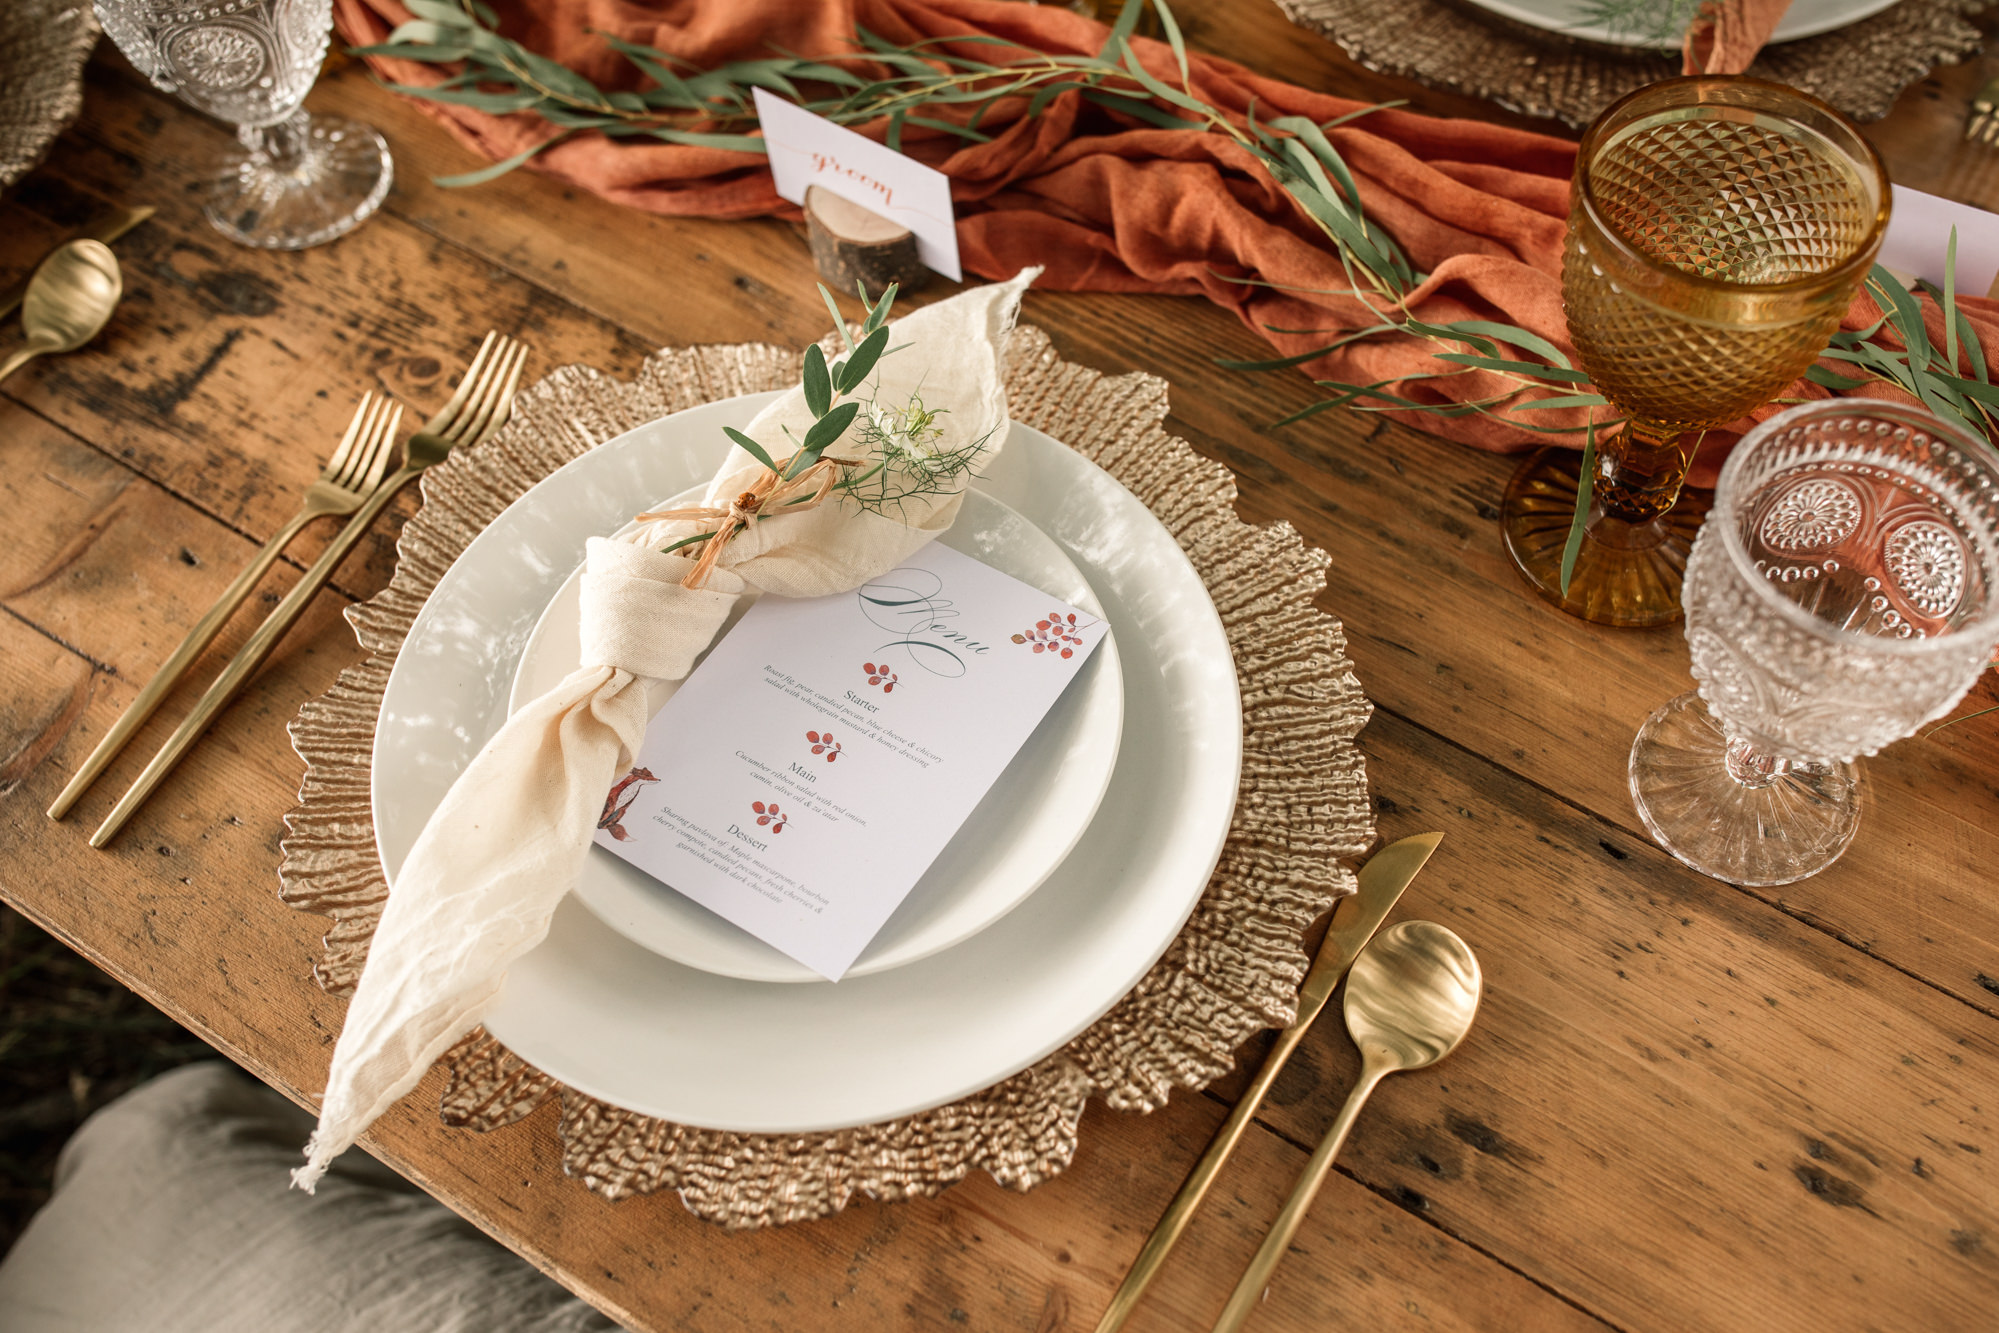 Close up wedding table setting for styled shoot for Suffolk Barn Wedding Photographer